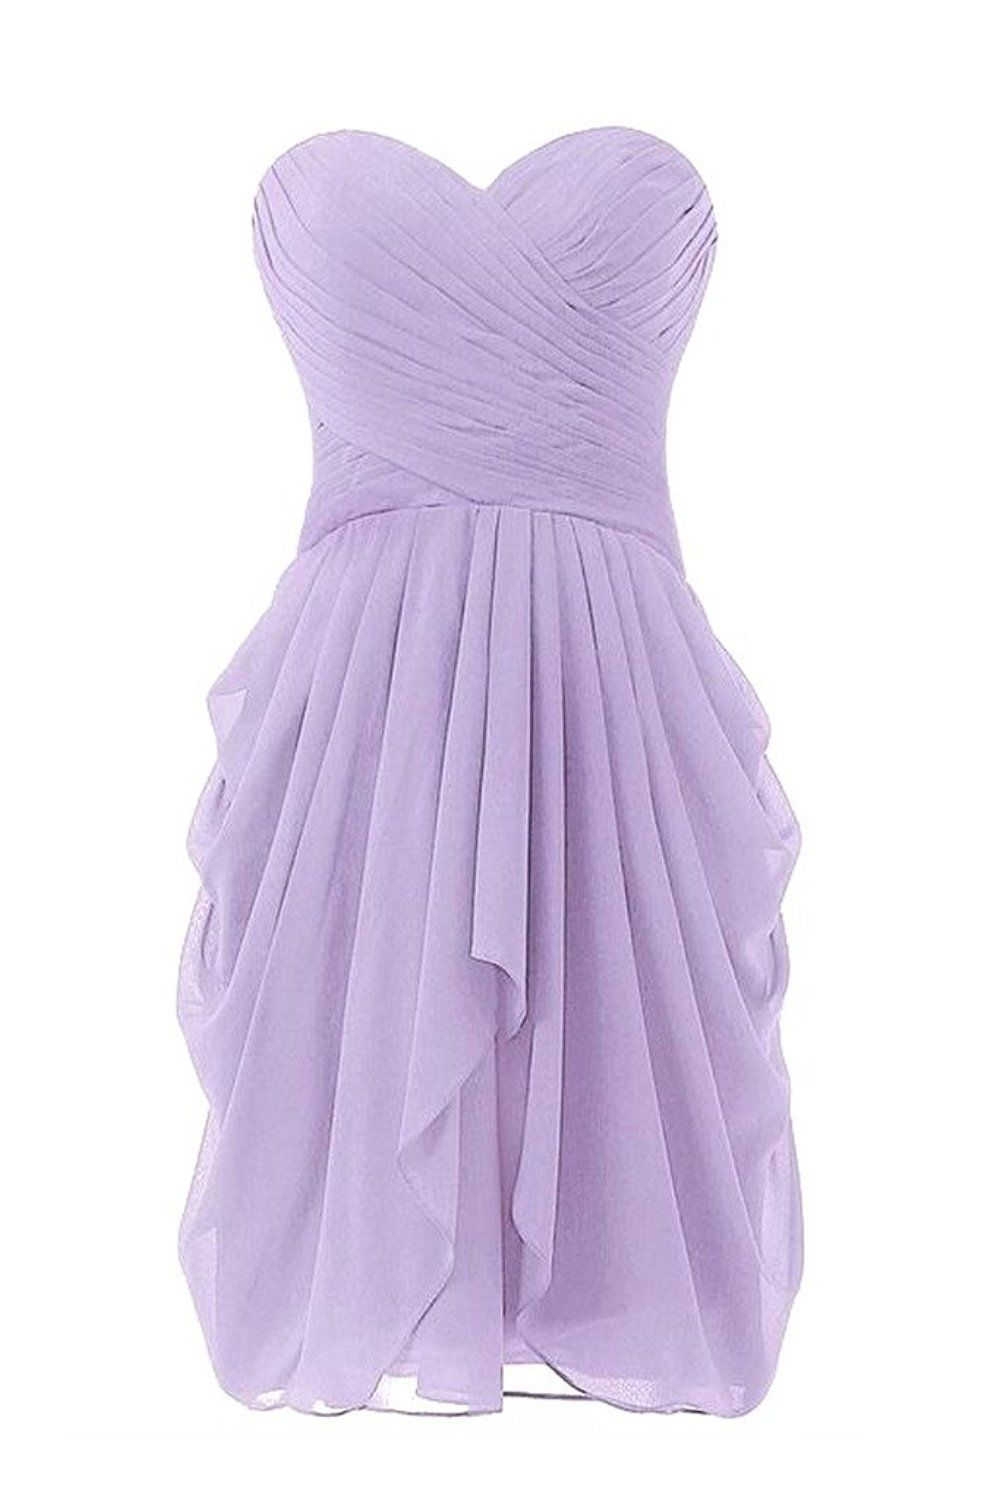 Dressy new star womenus chiffon bridesmaid dress short homecoming